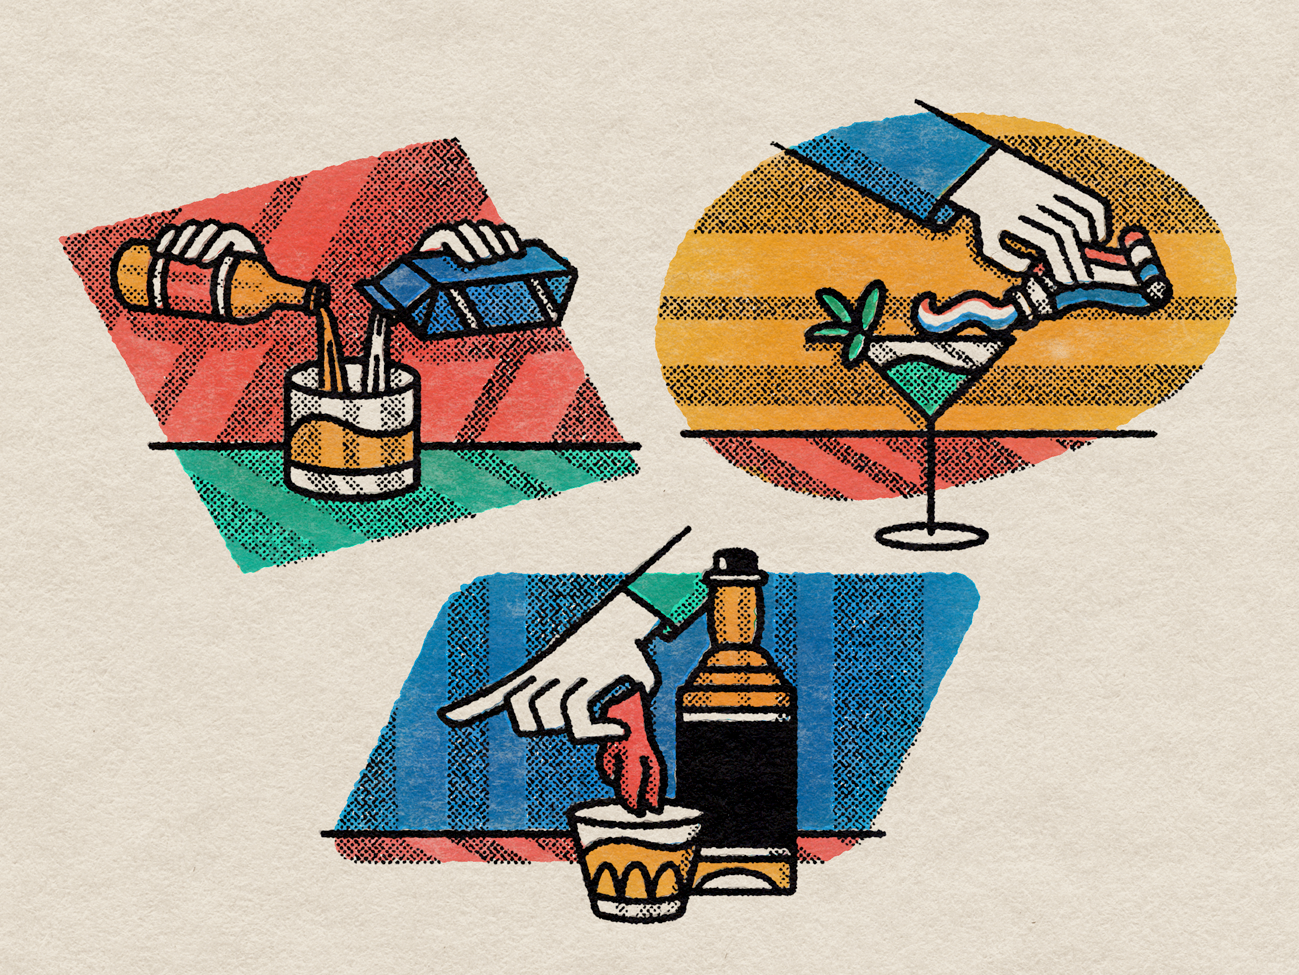 Weird Drinks ipadpro bars editorial illustration cocktails photoshop texture alcohol halftone illustration